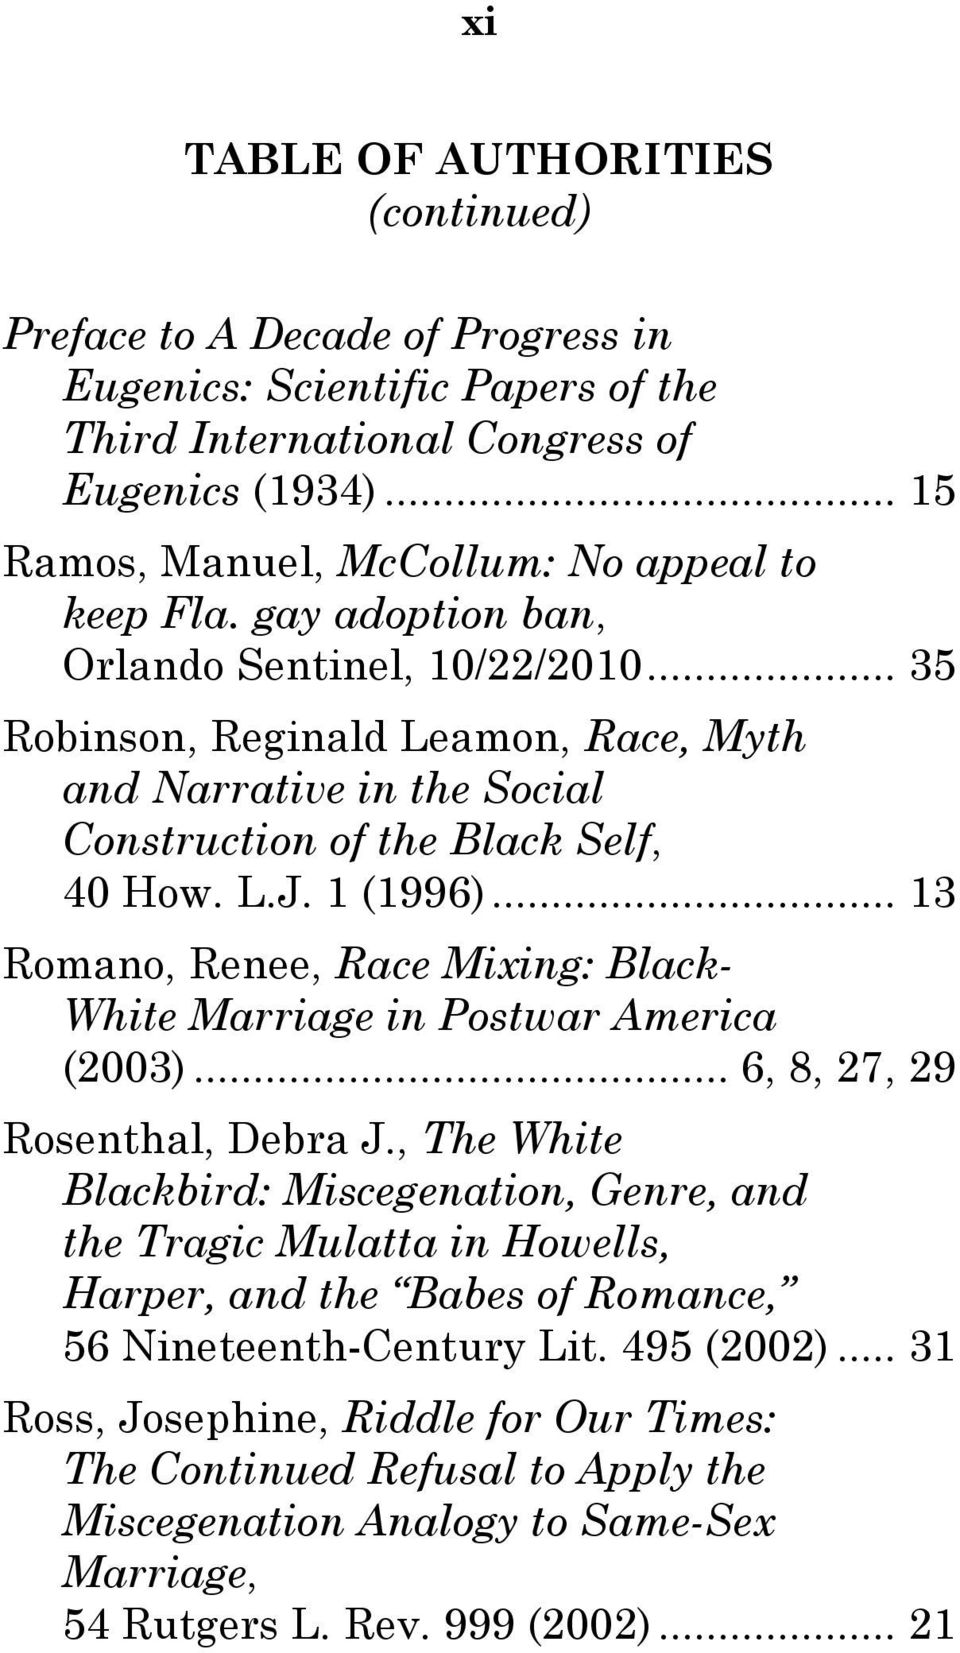 .. 35 Robinson, Reginald Leamon, Race, Myth and Narrative in the Social Construction of the Black Self, 40 How. L.J. 1 (1996).